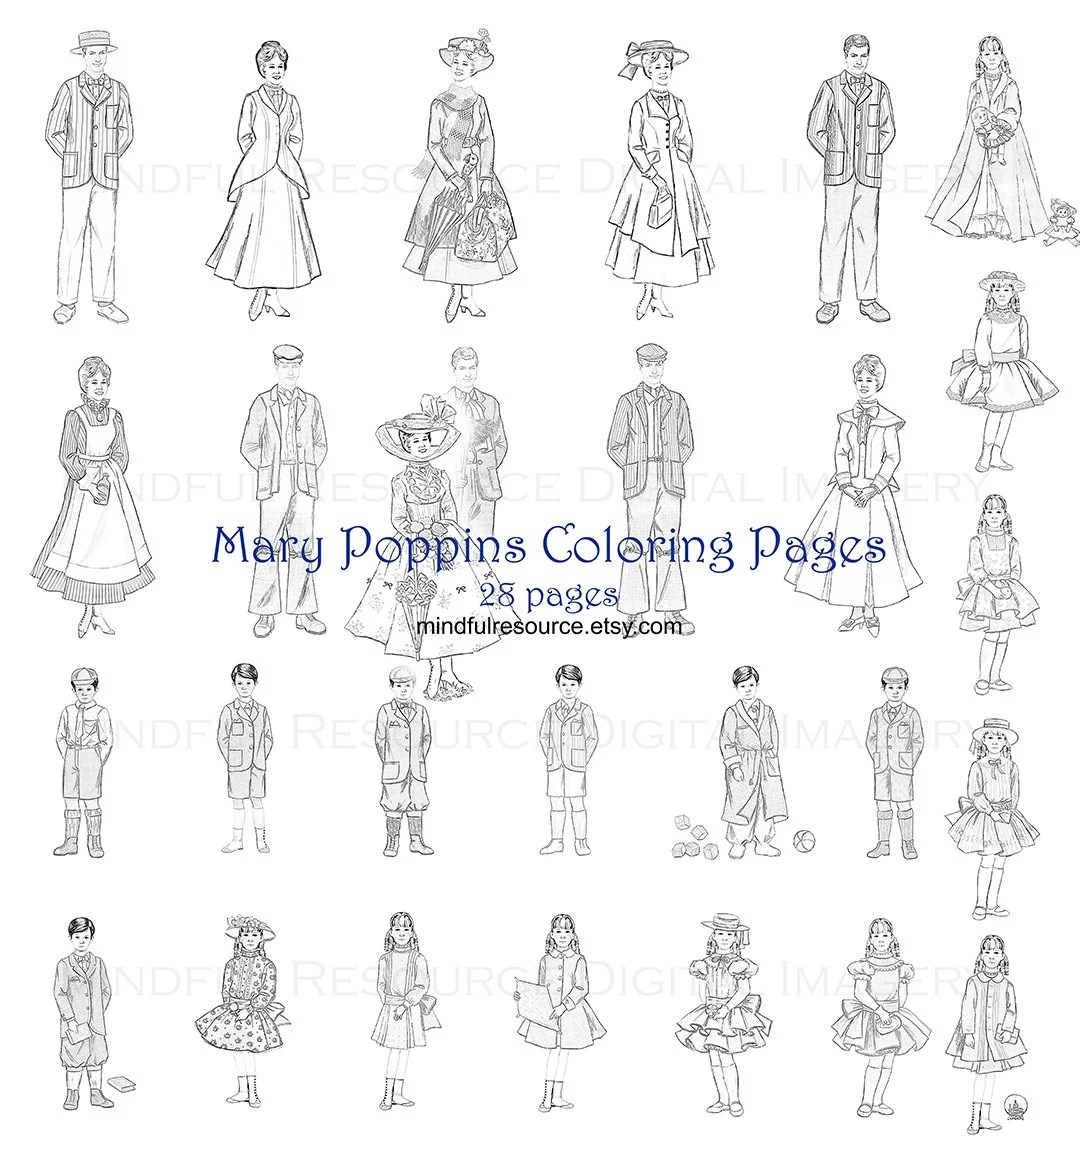 Mary Poppins Coloring Pages 28 Printable By Mindfulresource